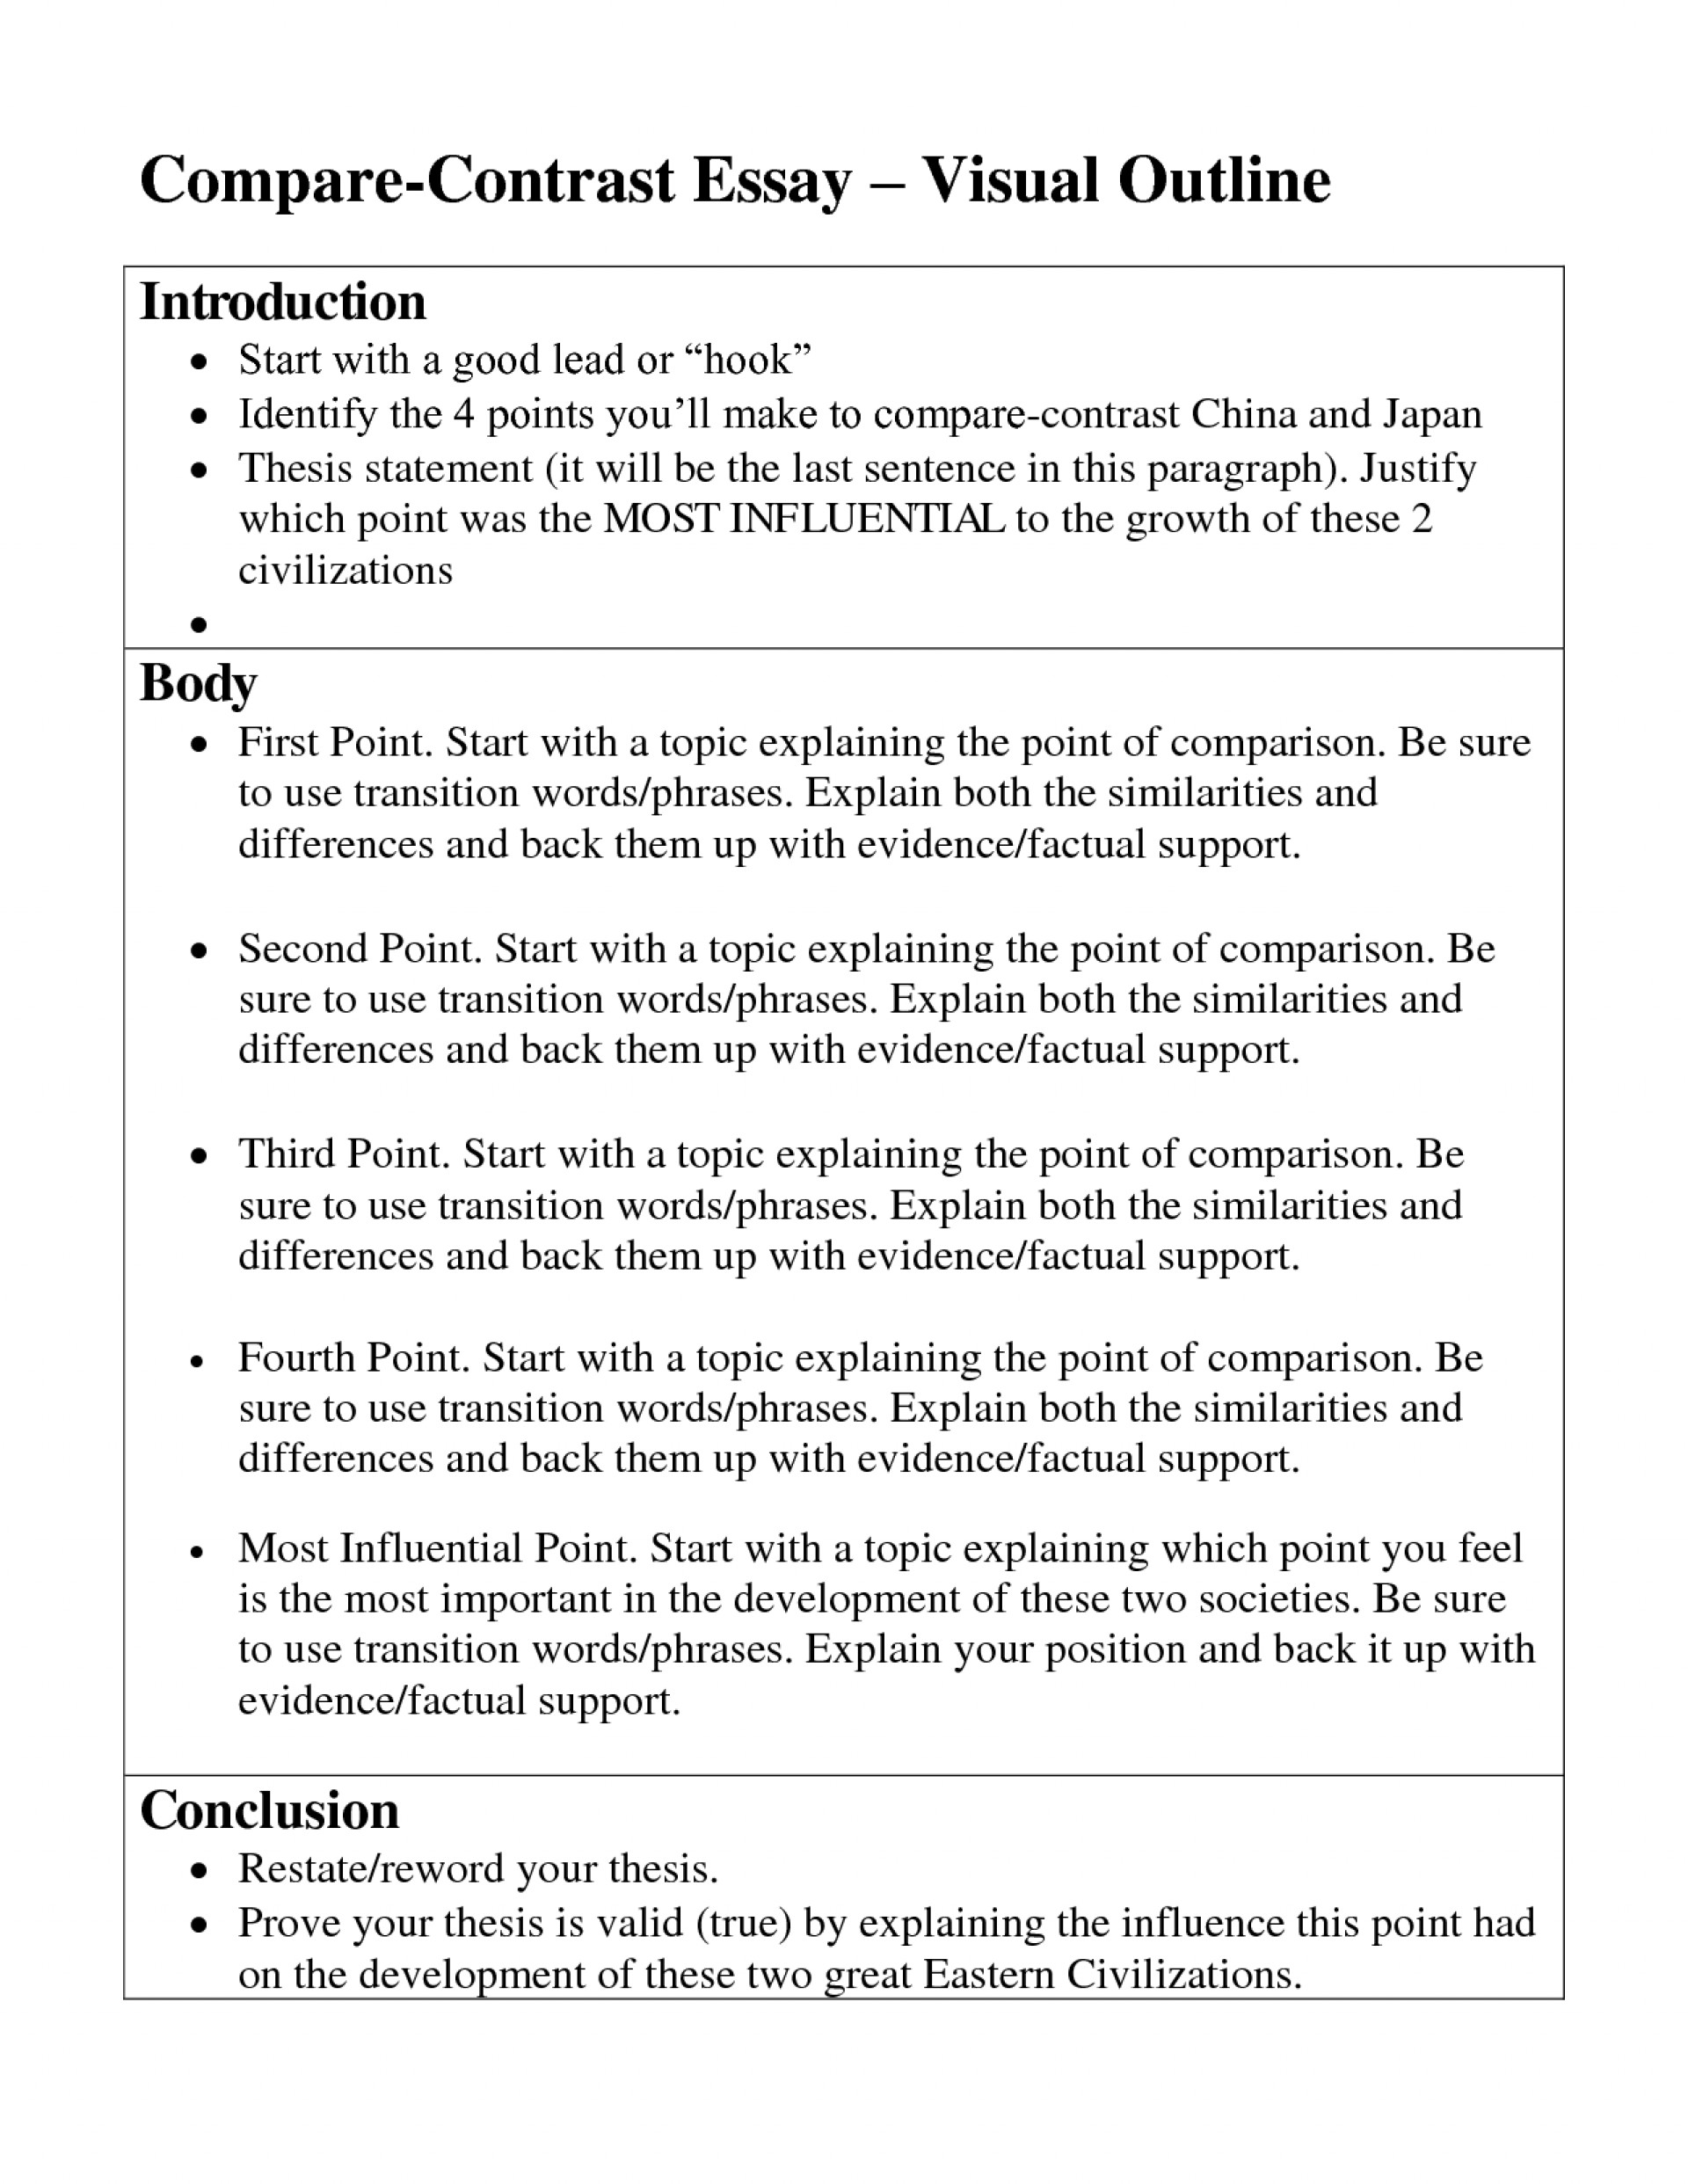 004 Comparison And Contrast Essay Outline Impressive Compare Format Middle School Worksheet Pdf Examples 1920